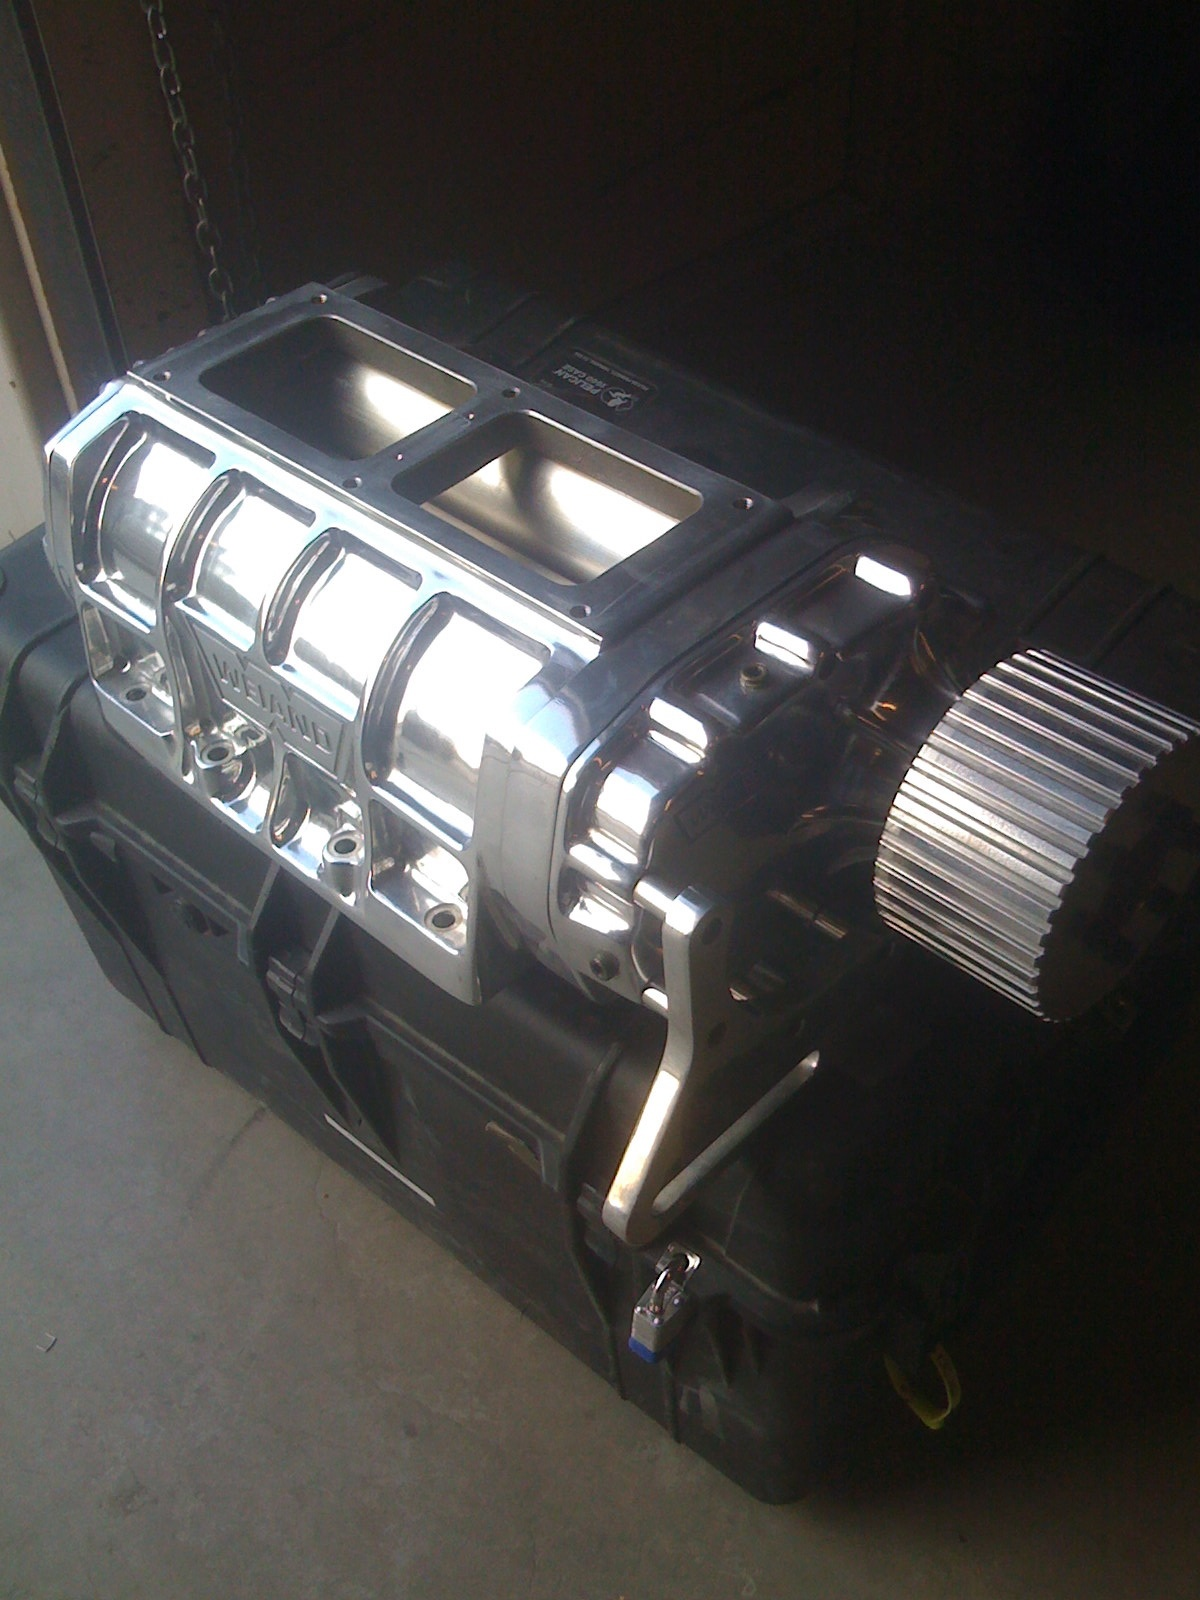 Polished weiand 671 supercharger setup for sbc  LS1TECH  Camaro and Firebird Forum Discussion